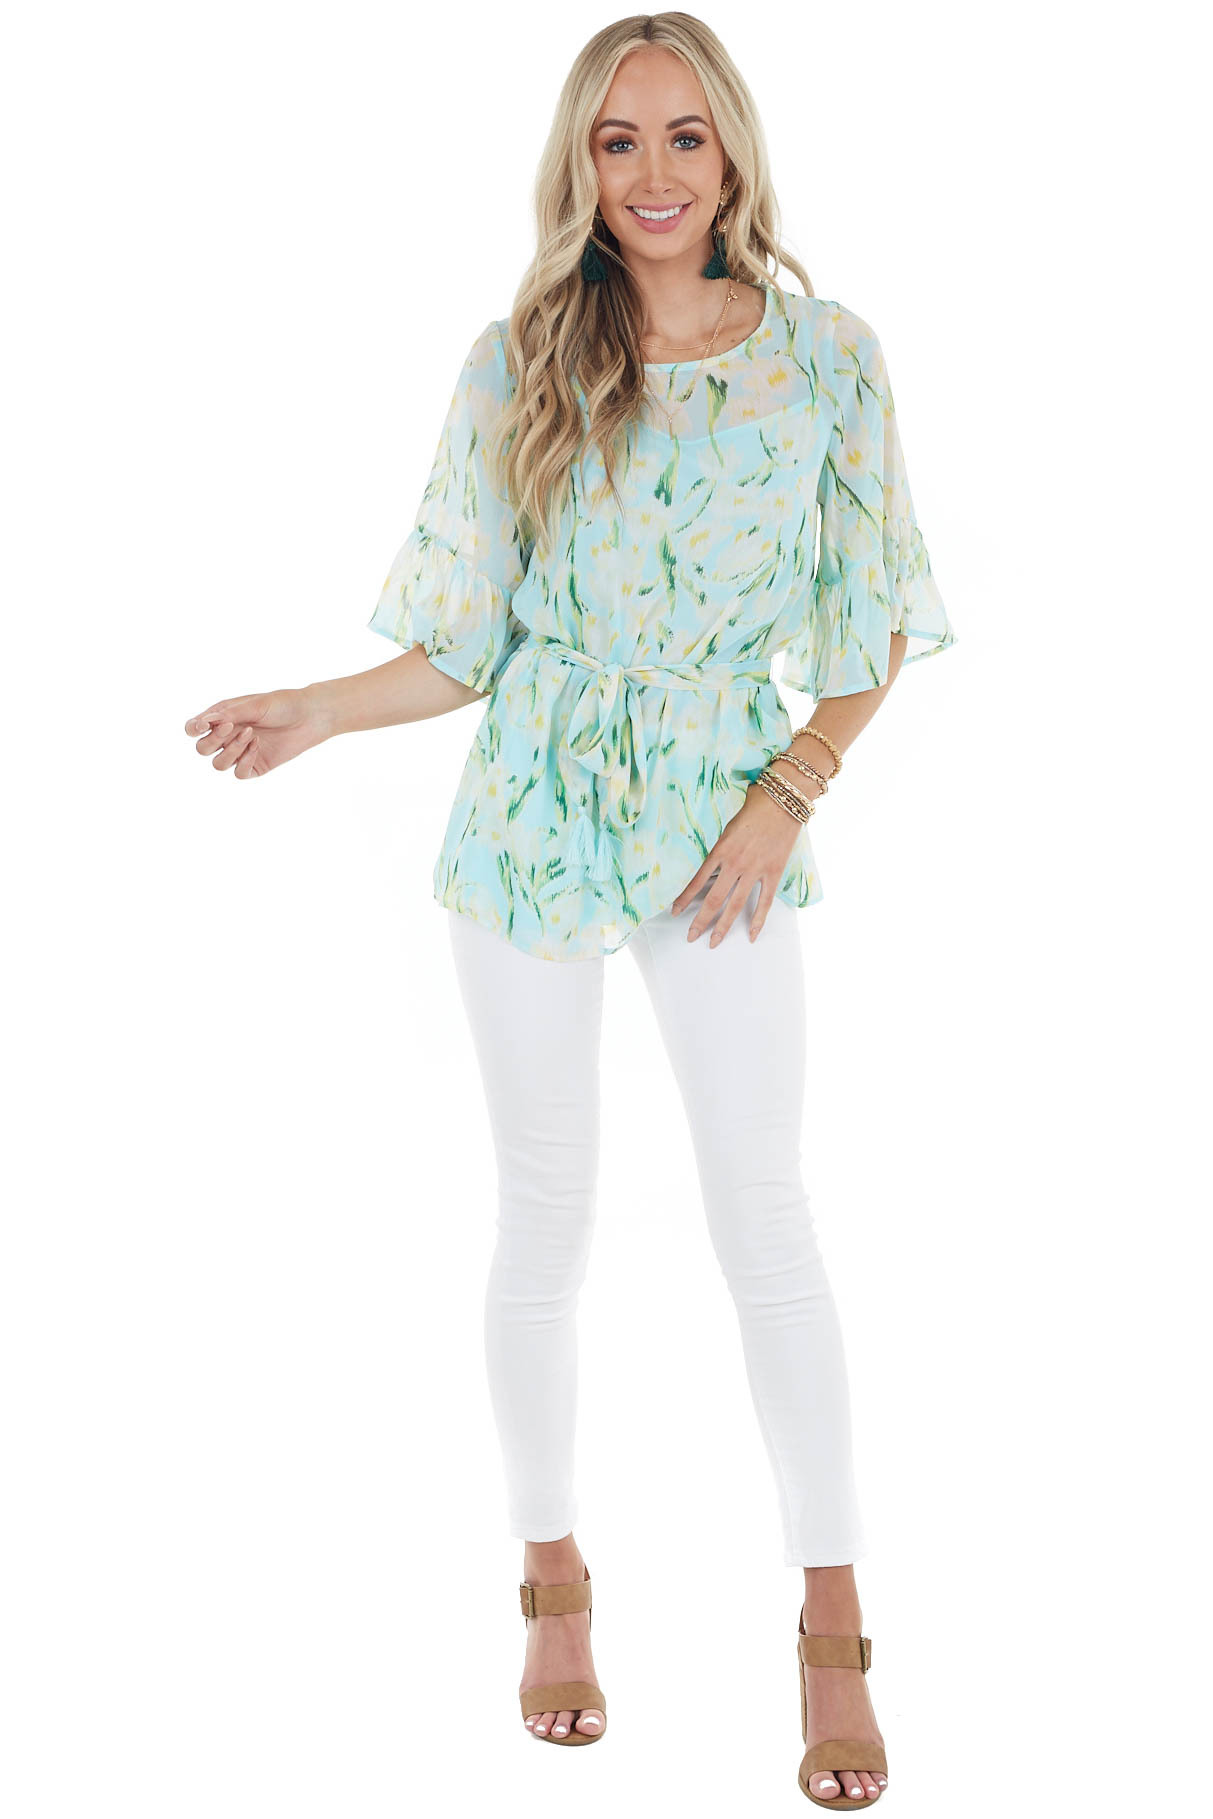 Sky Blue Floral Print Chiffon Top with Front Tie and Ruffles